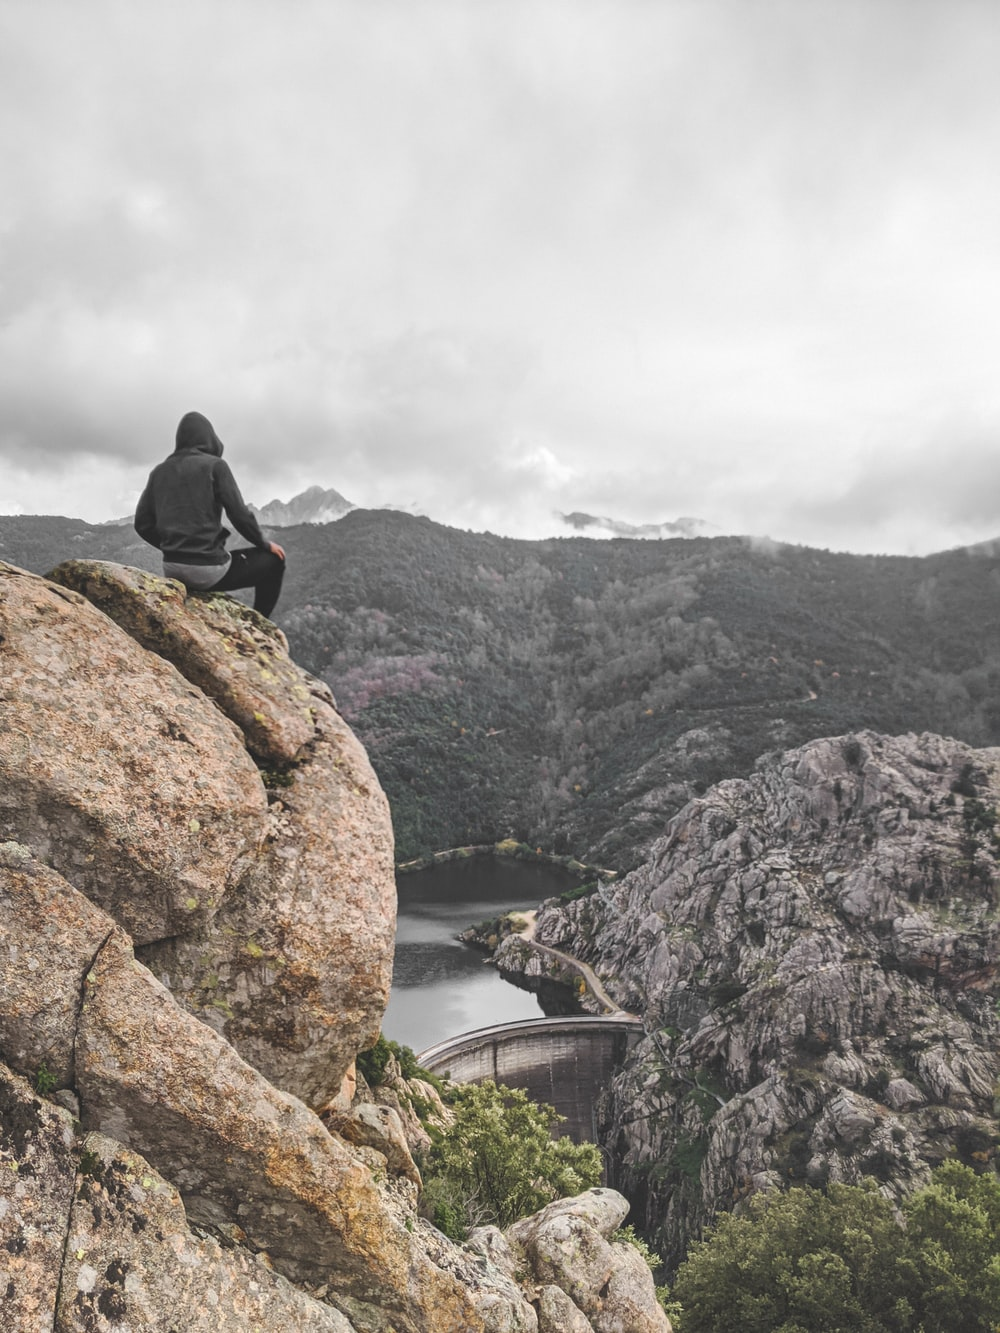 person wearing gray pullover sitting on mountain edge